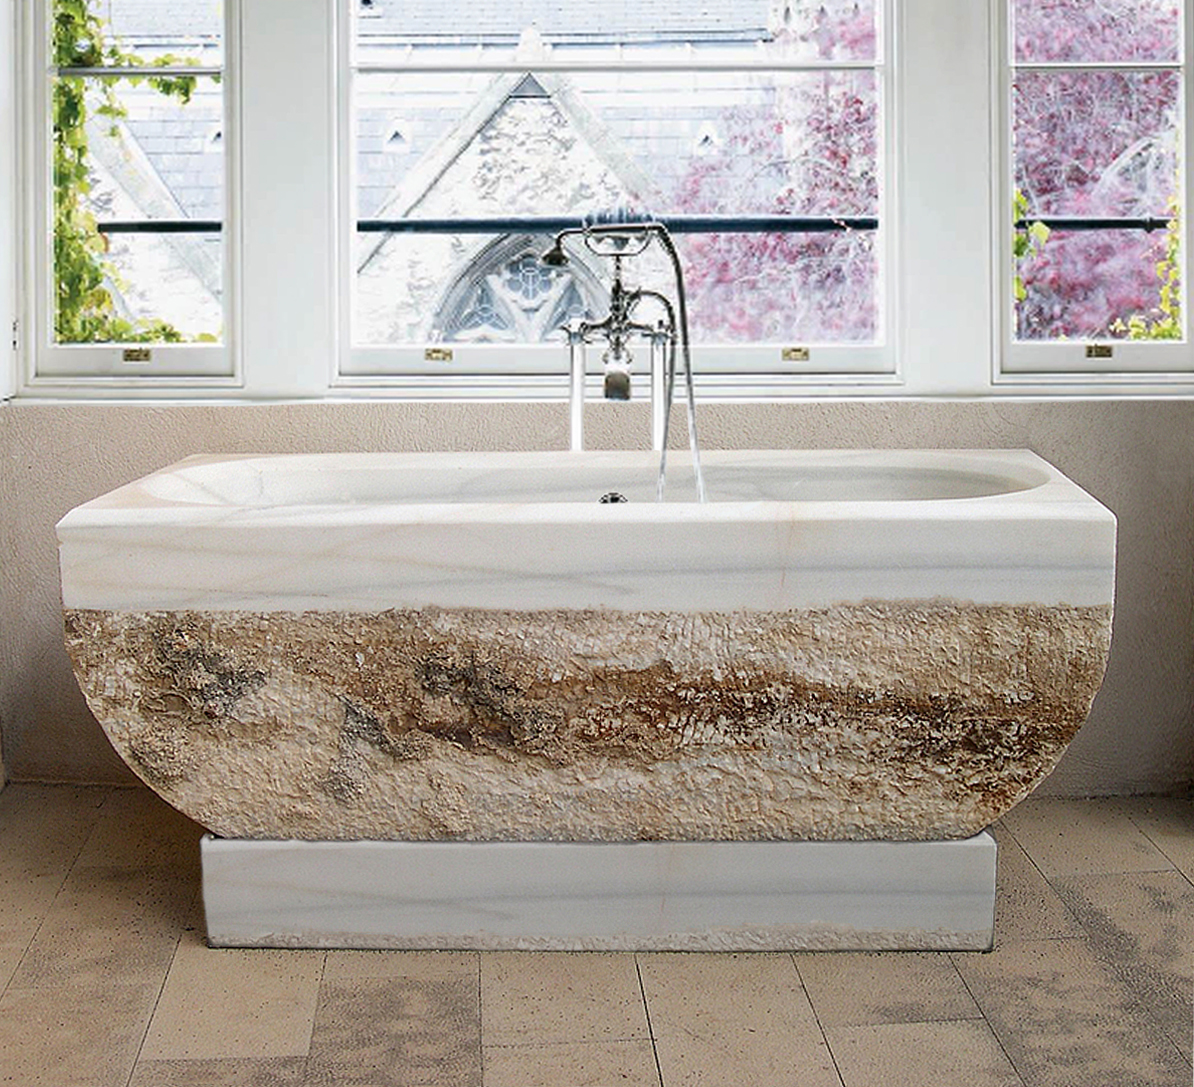 Stone Bathtubs By Ancient Surfaces Hand Carved Out Of